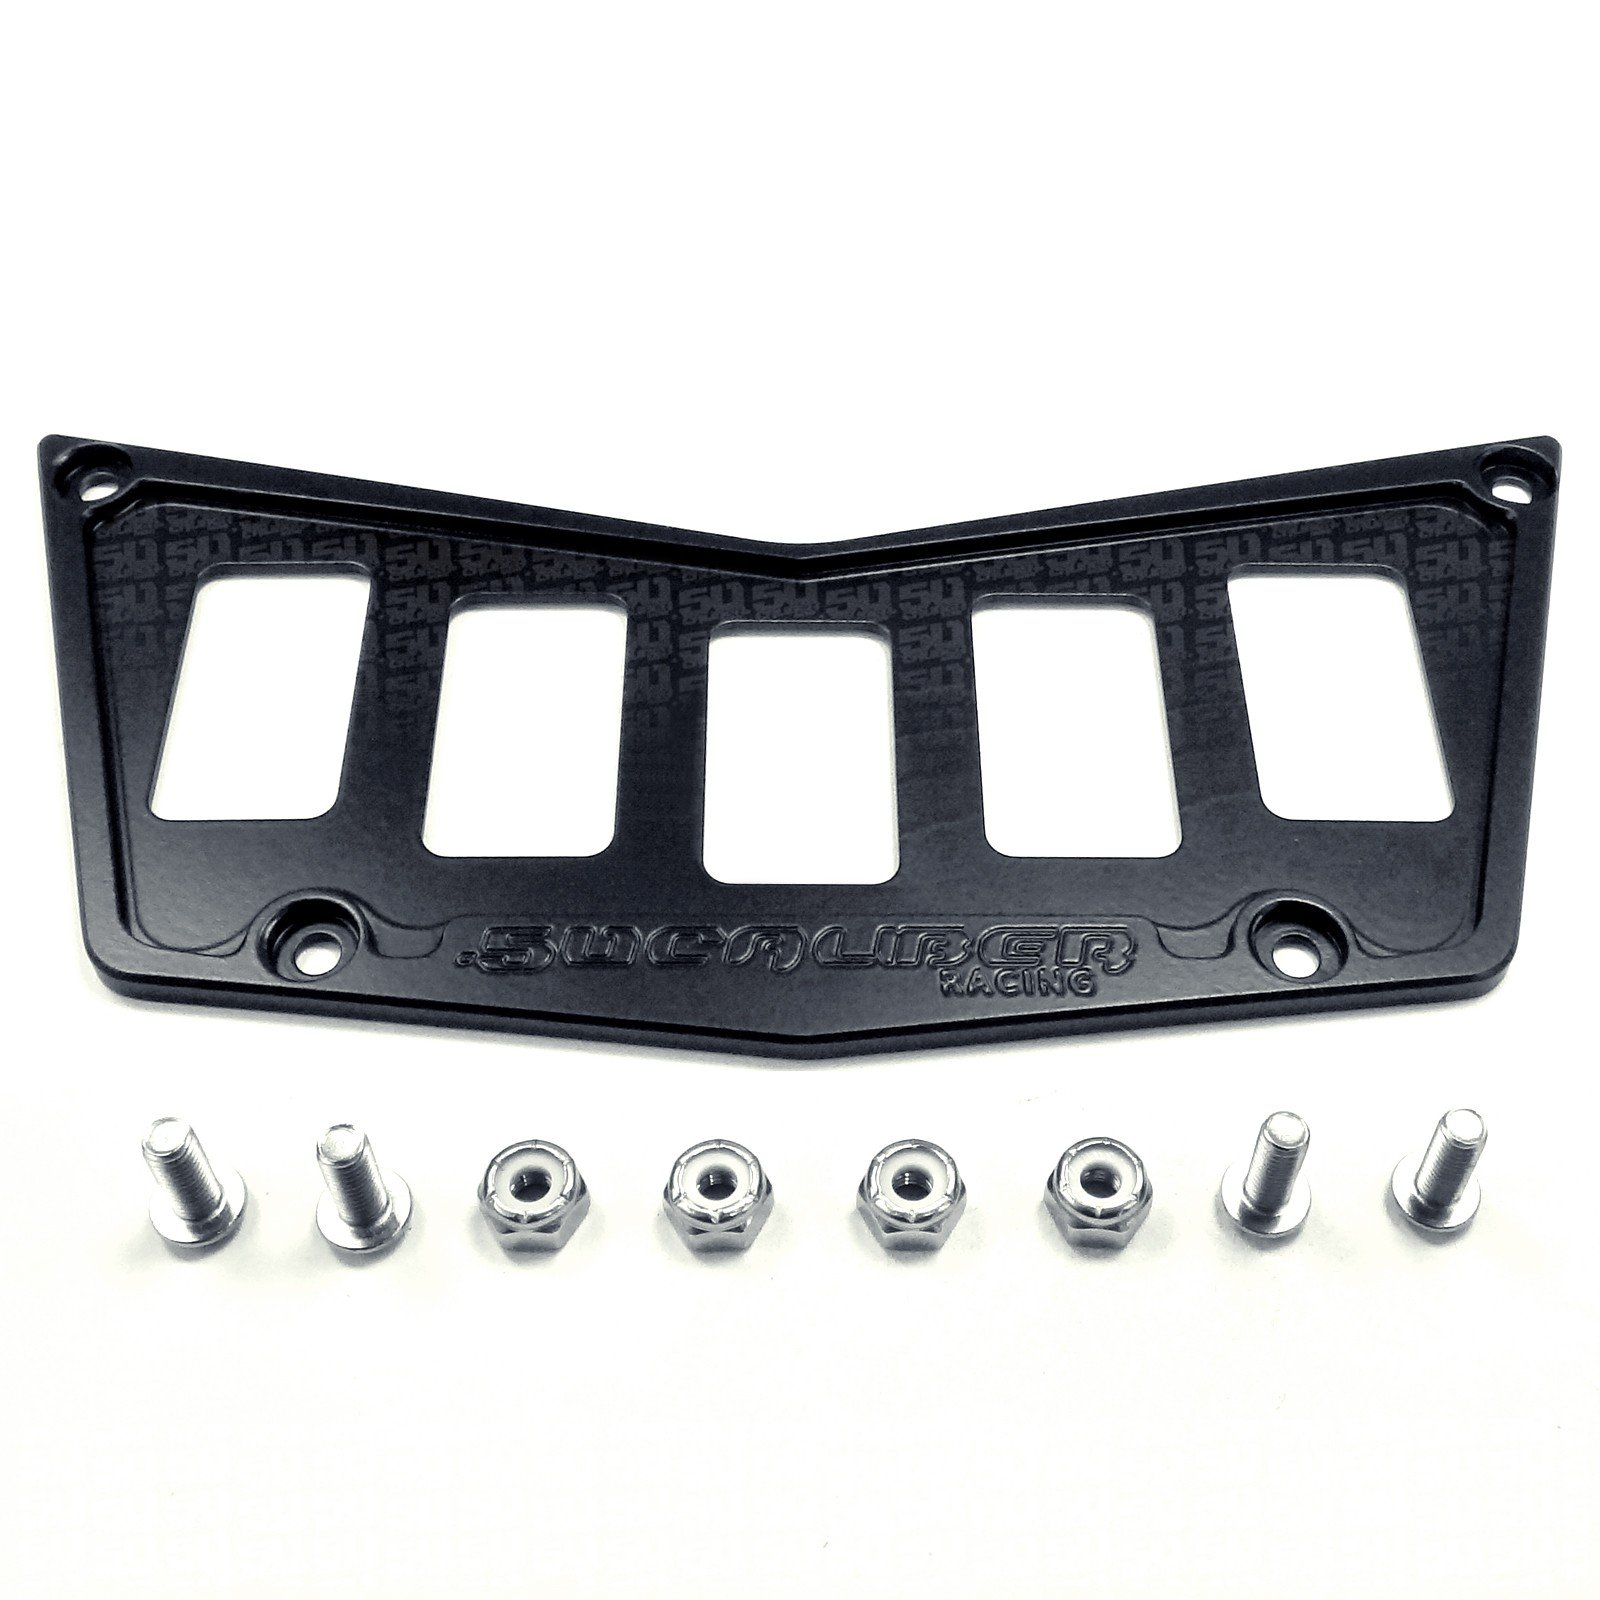 50 Caliber Racing Stealth Black Powdercoat Billet 6061 Aluminum 5 Switch Hole Dash Panel Plate Bezel - Deletes Lighter and Adds 3 Rocker Switch Mounting Locations For Polaris RZR 570 800 XP900 [5357B]